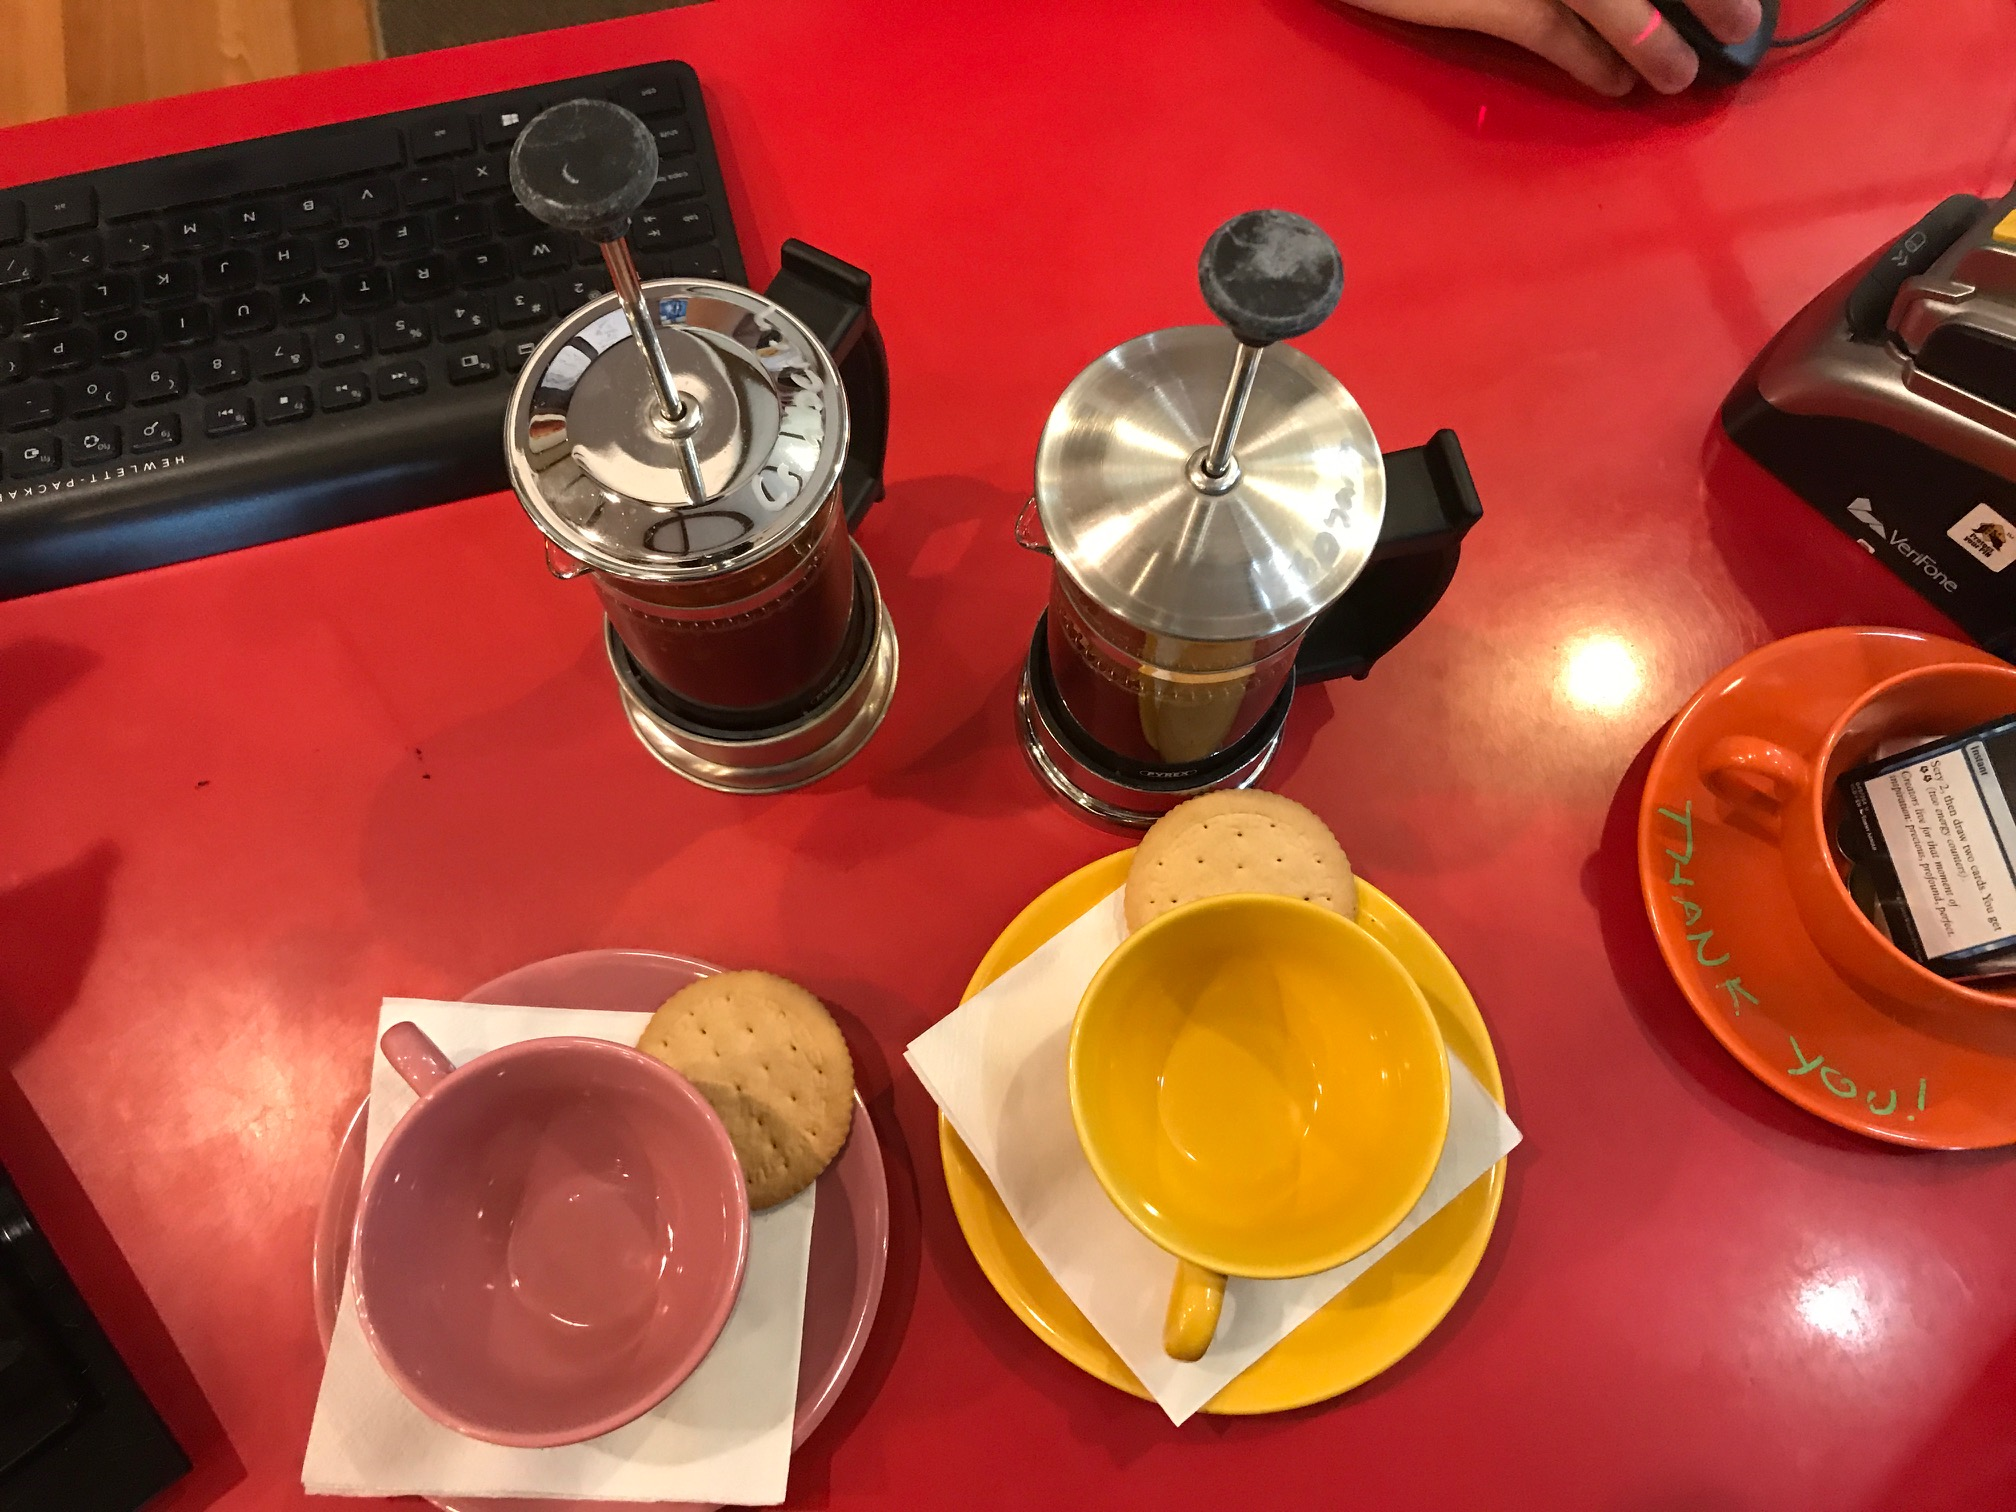 We loved the colourful, modern retro design of our cups and pot of tea. The biscuits were a nice touch.